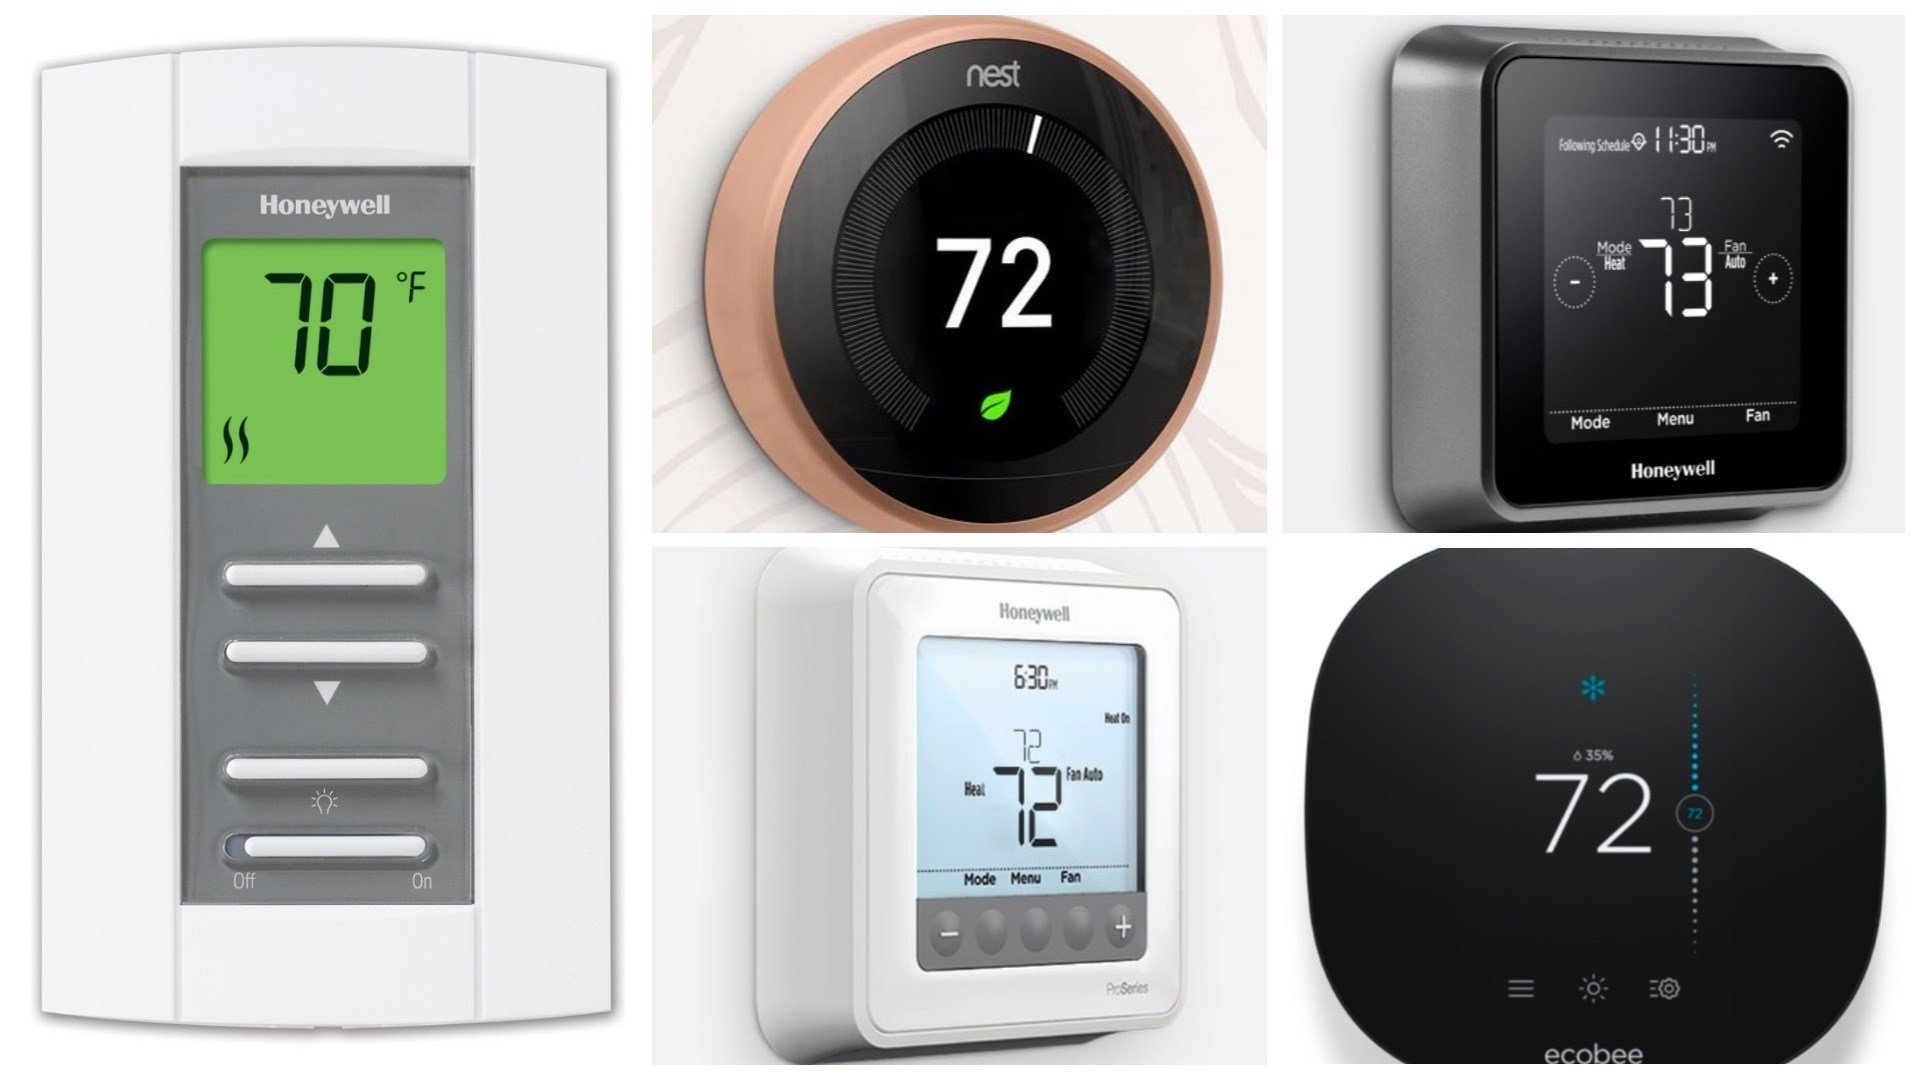 Programmable thermostats have been around for a long time and provided you take the time to actually program them, they can save you money. (Source: Nest, EcoBee, Honeywell)